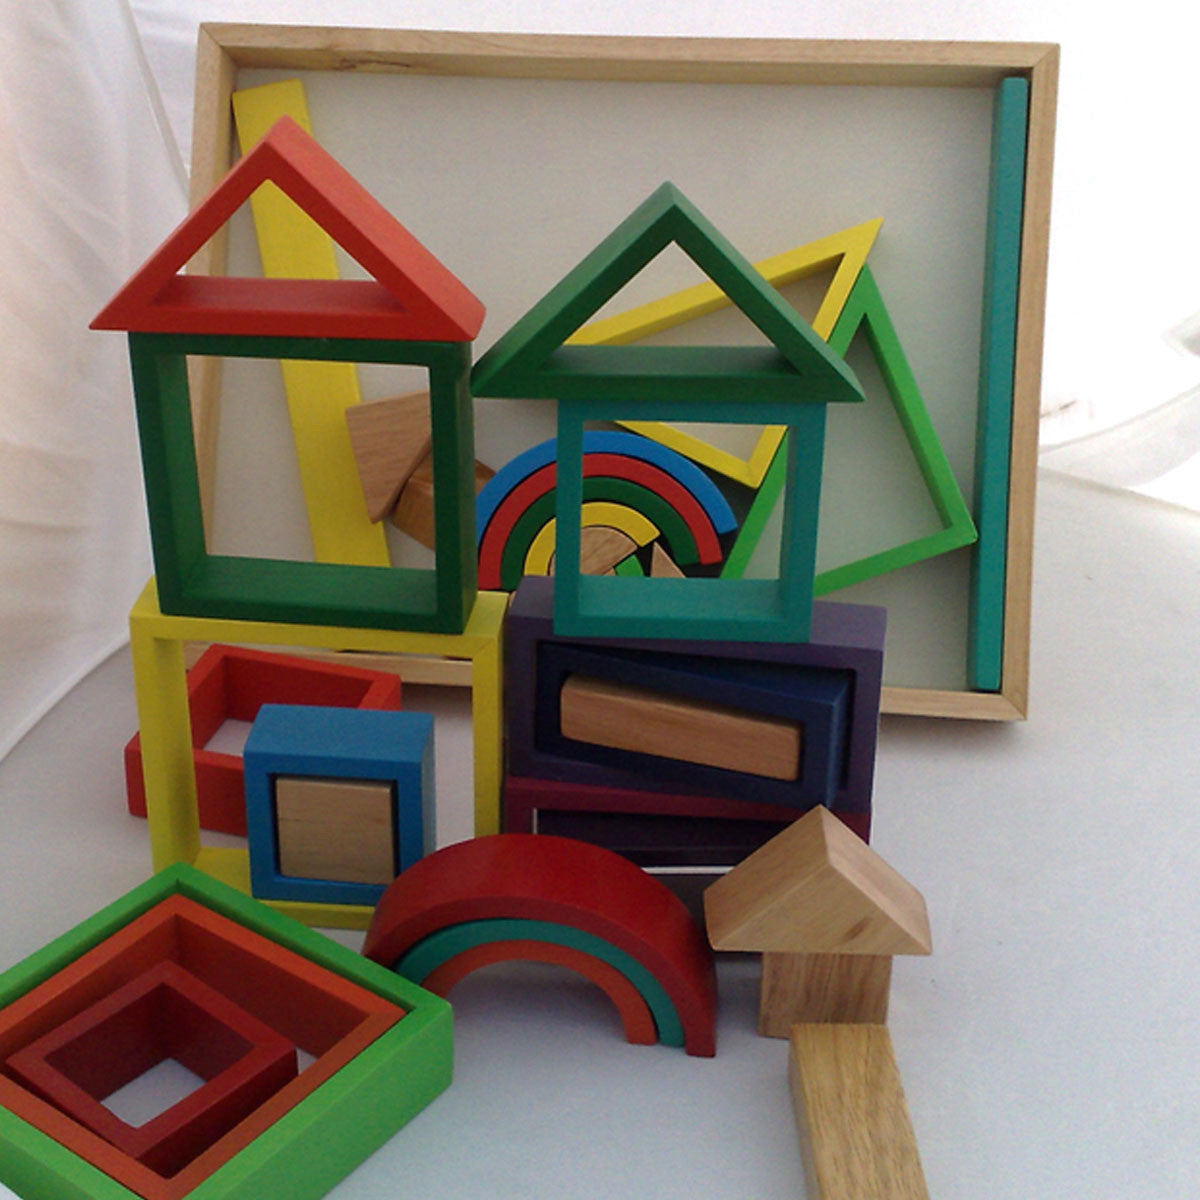 Qtoys Rainbow Blocks QToys Wooden Blocks at Little Earth Nest Eco Shop